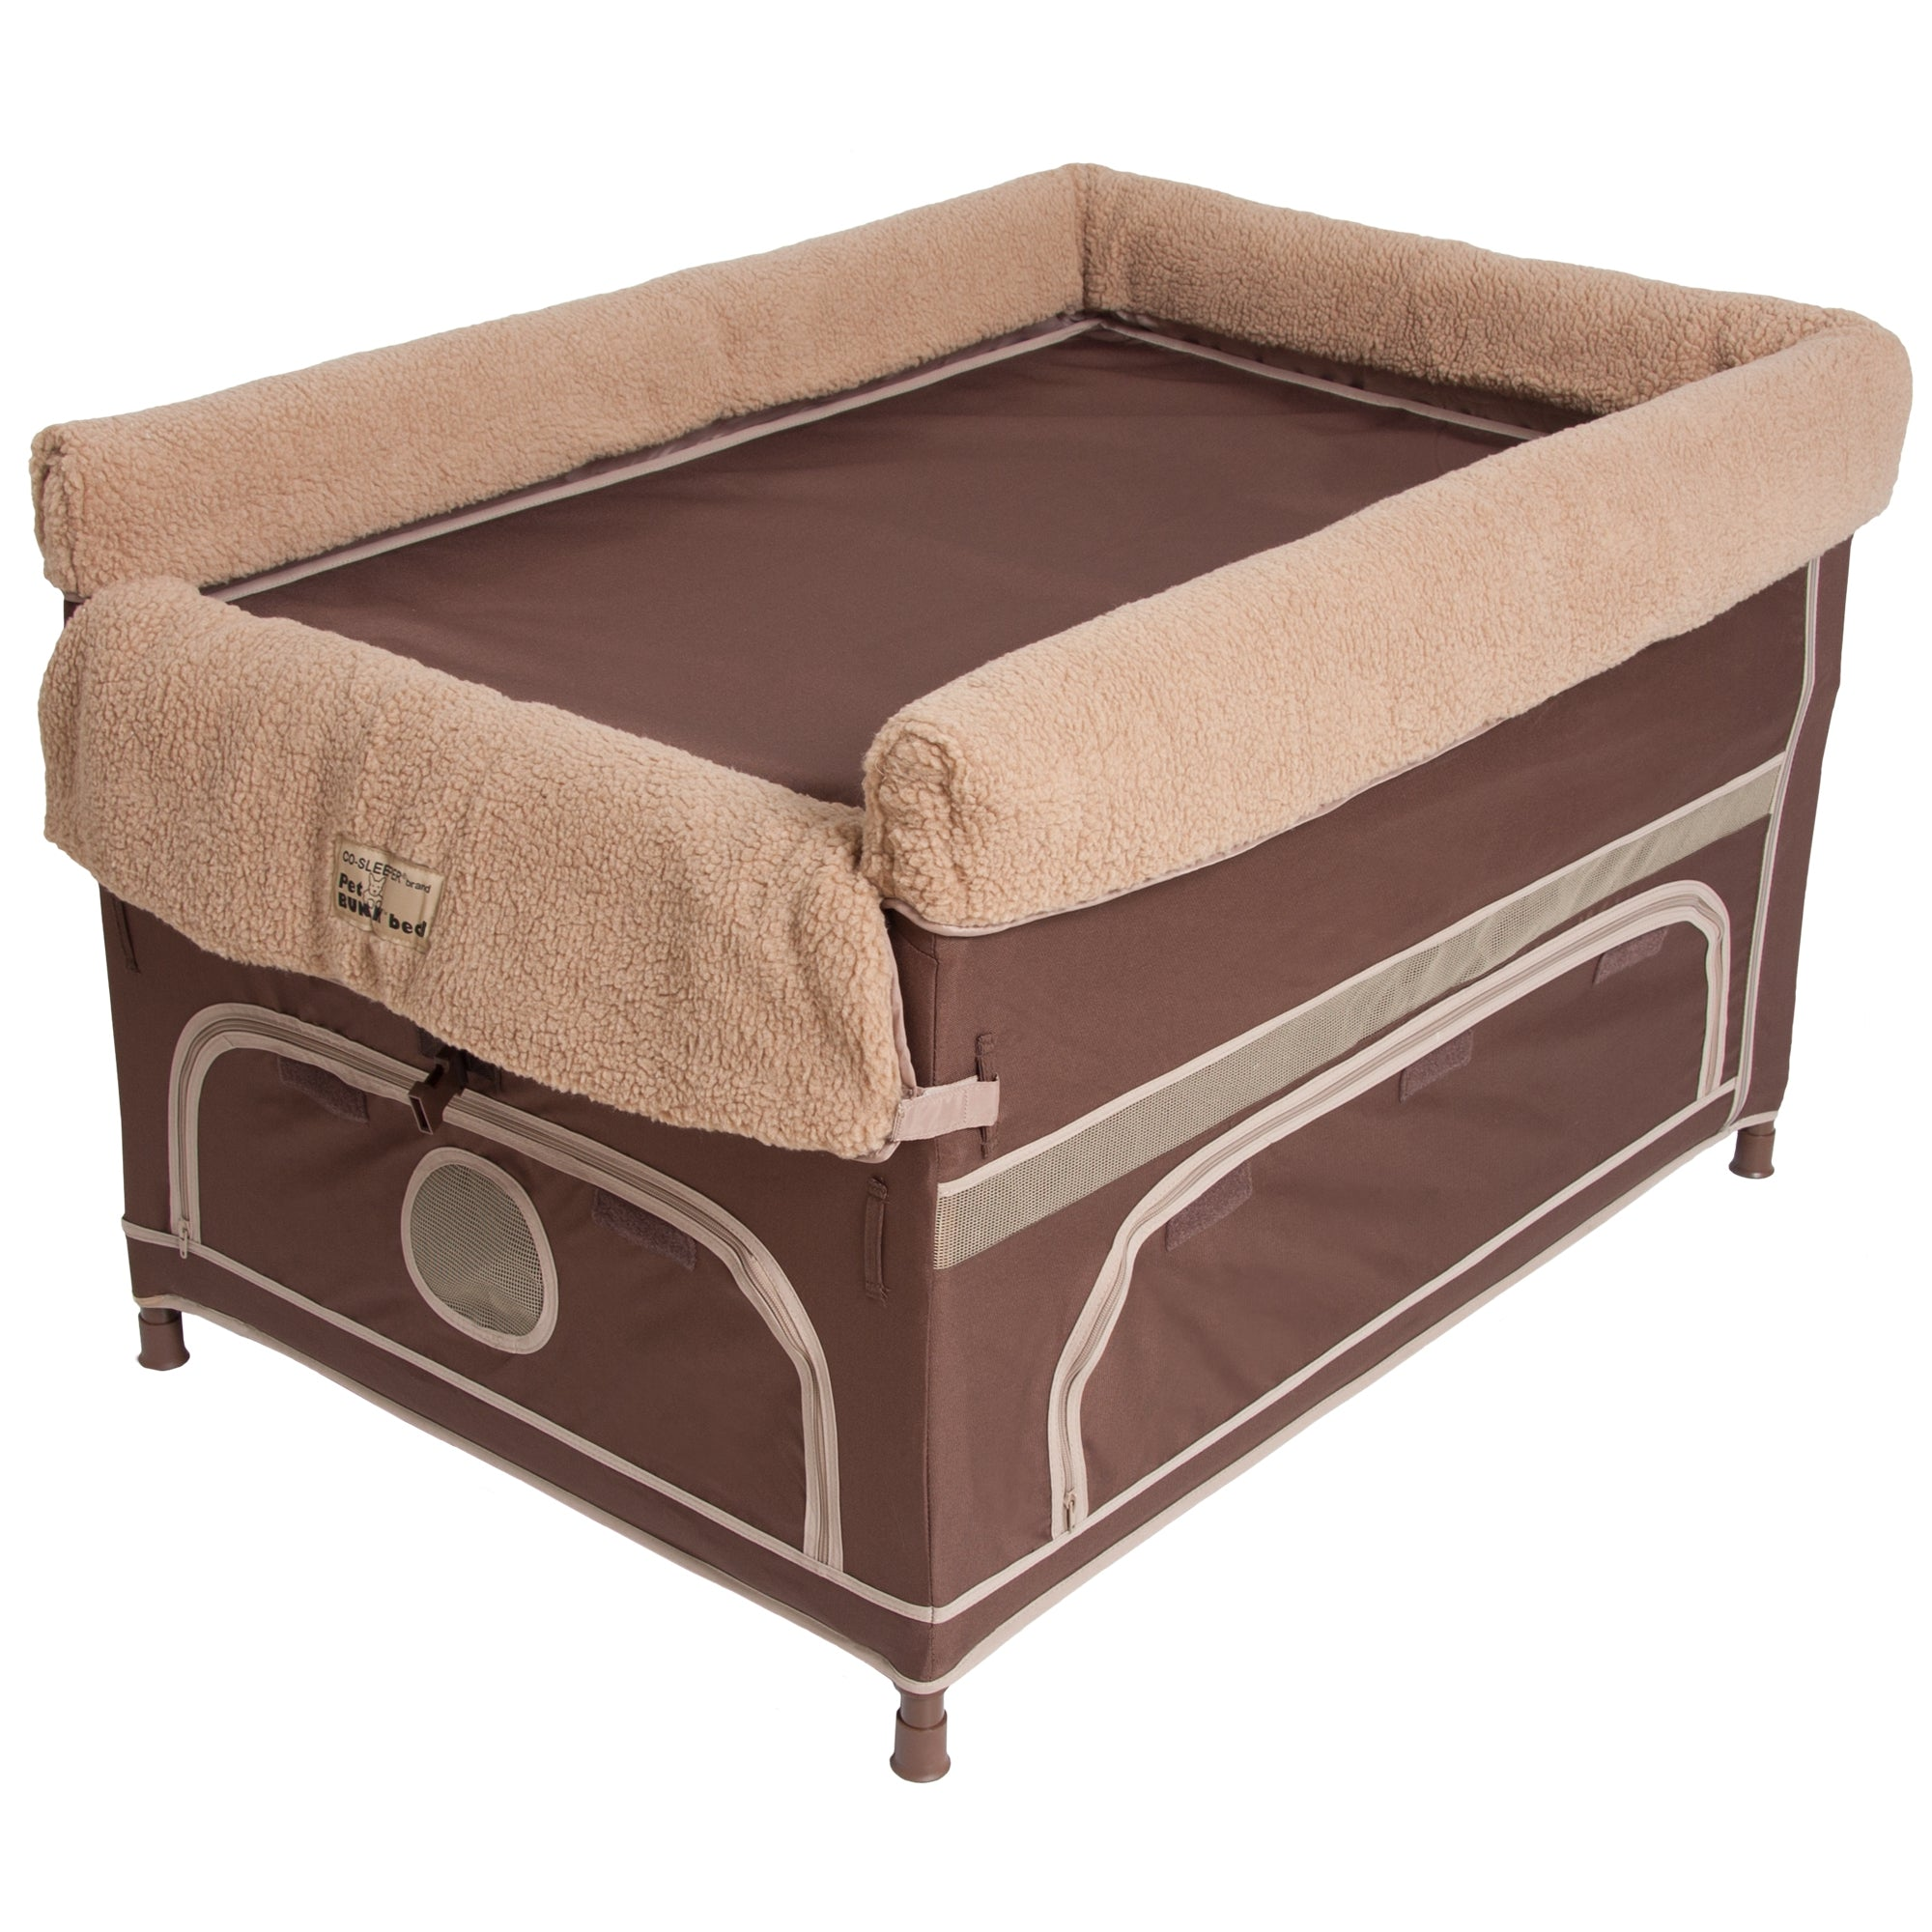 Arm's reach Pet bed bunk